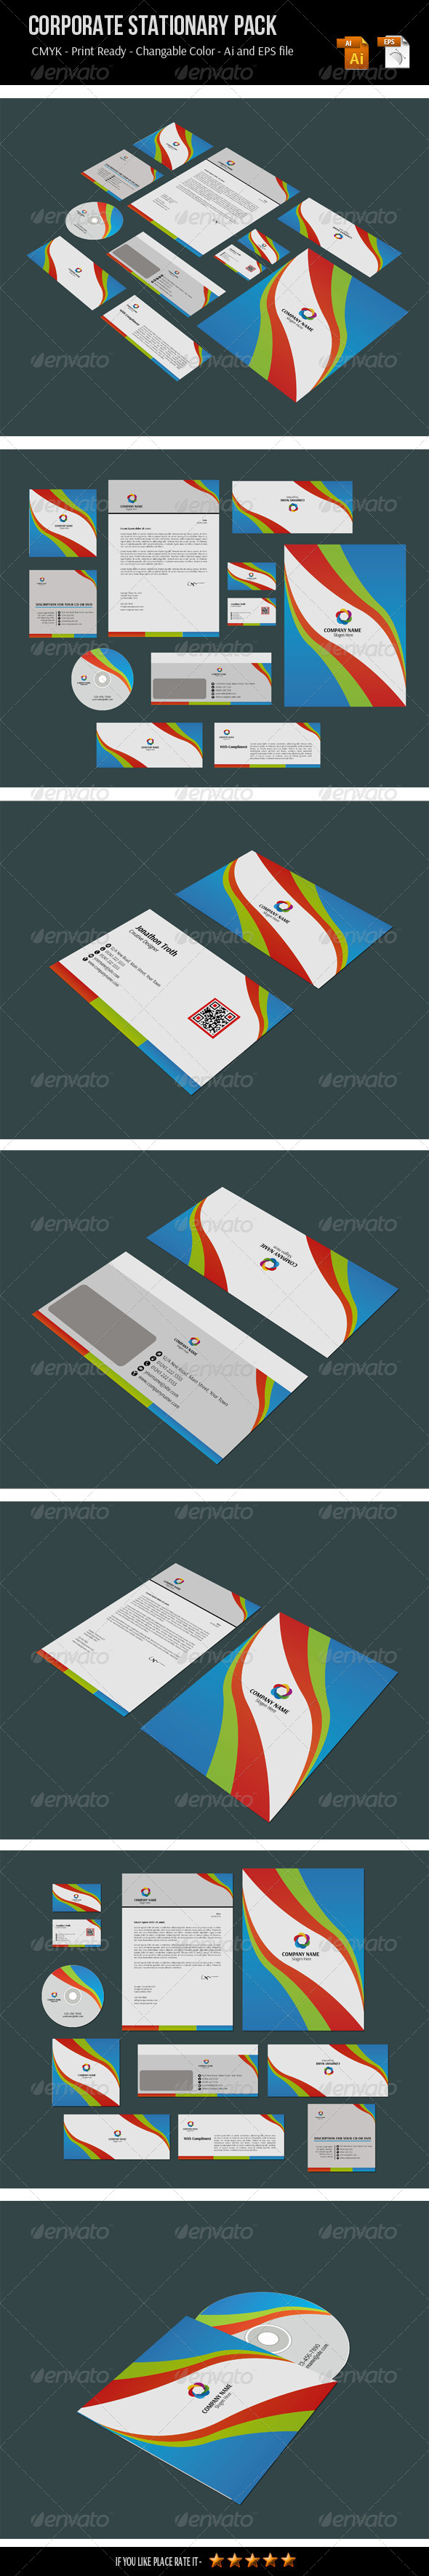 GraphicRiver Corporate Stationery Pack 6632184